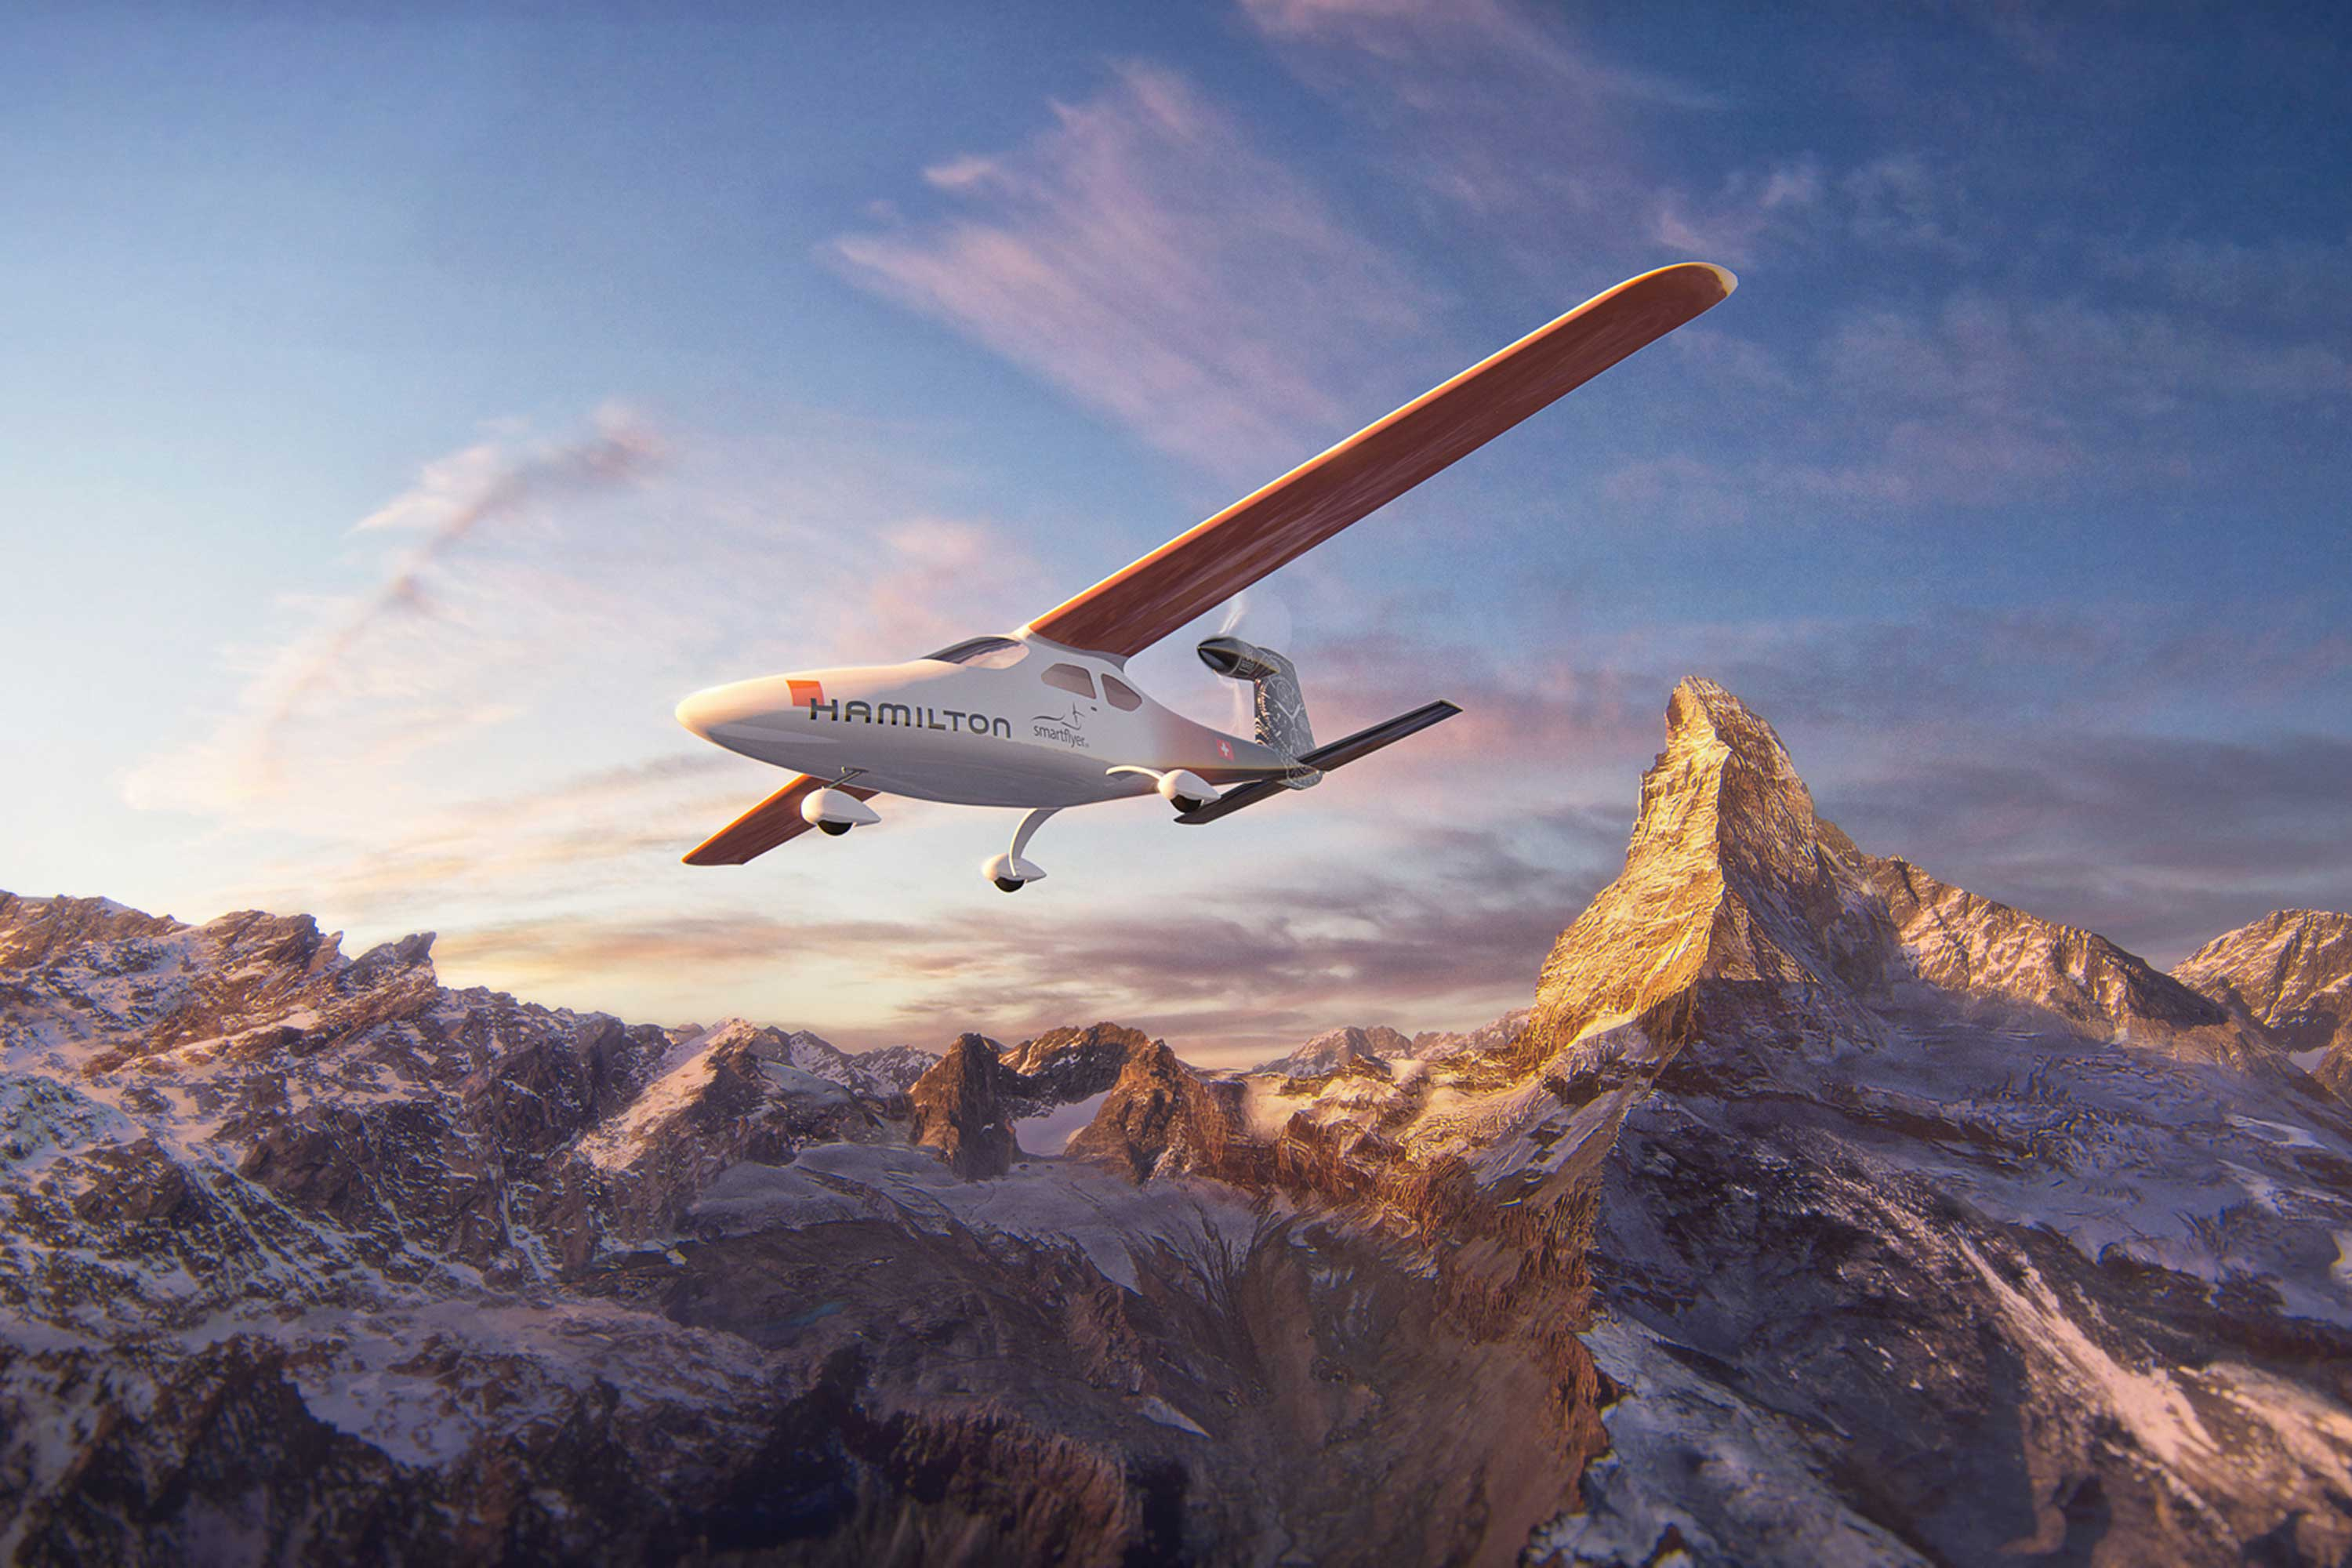 The Smartflyer is a four-seat aircraft that uses electric technology to generate 50 percent less carbon dioxide, 60 percent less noise, and costs 33 percent less to fuel and maintain than traditional small planes.